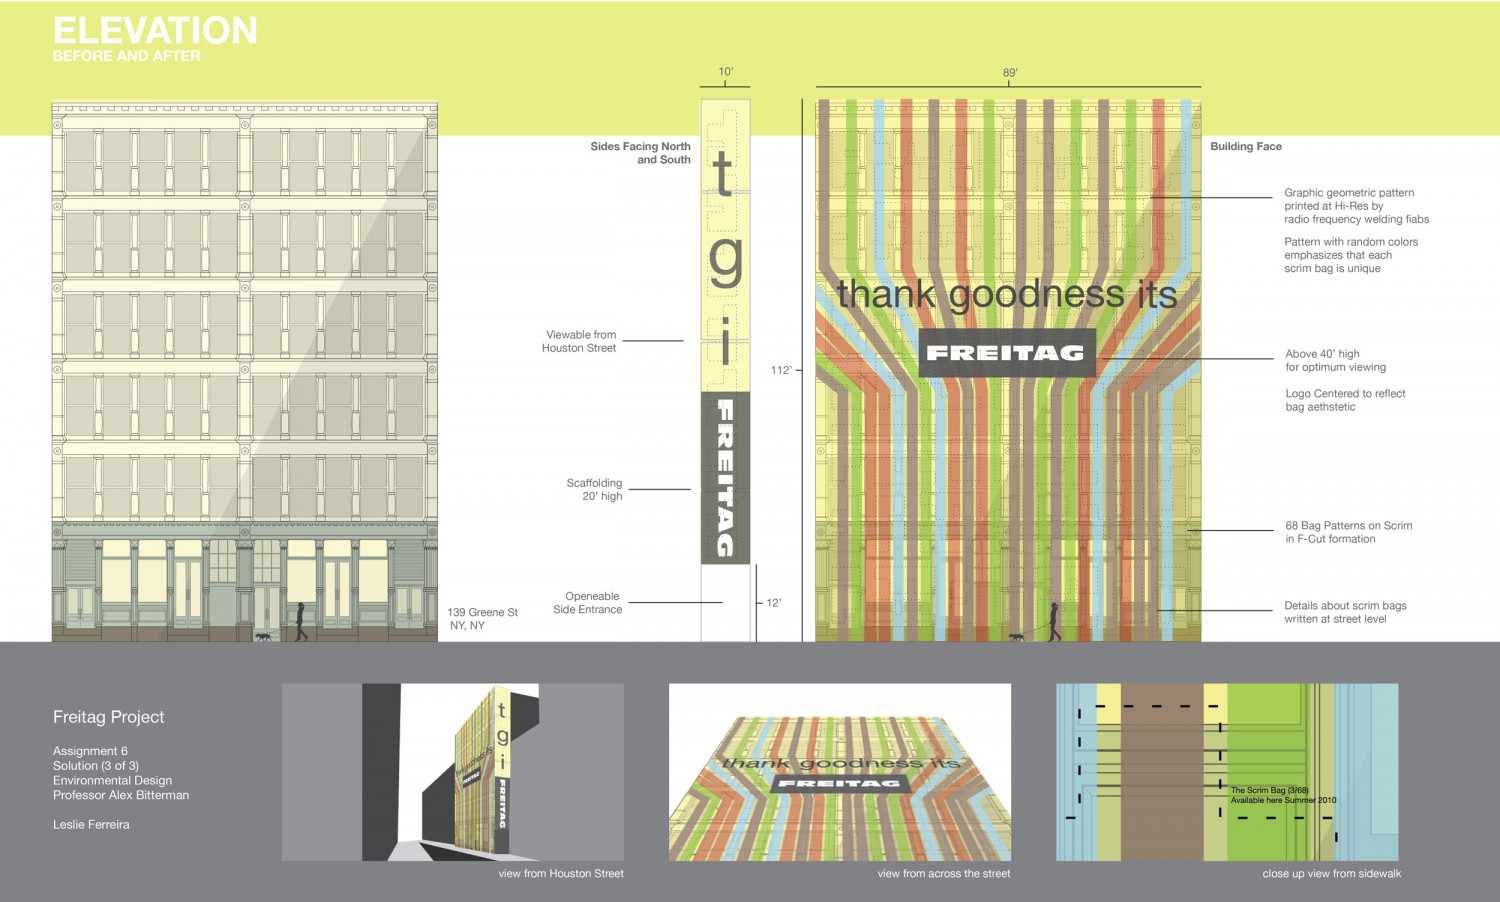 Building Facade Design & Illustration Infographic